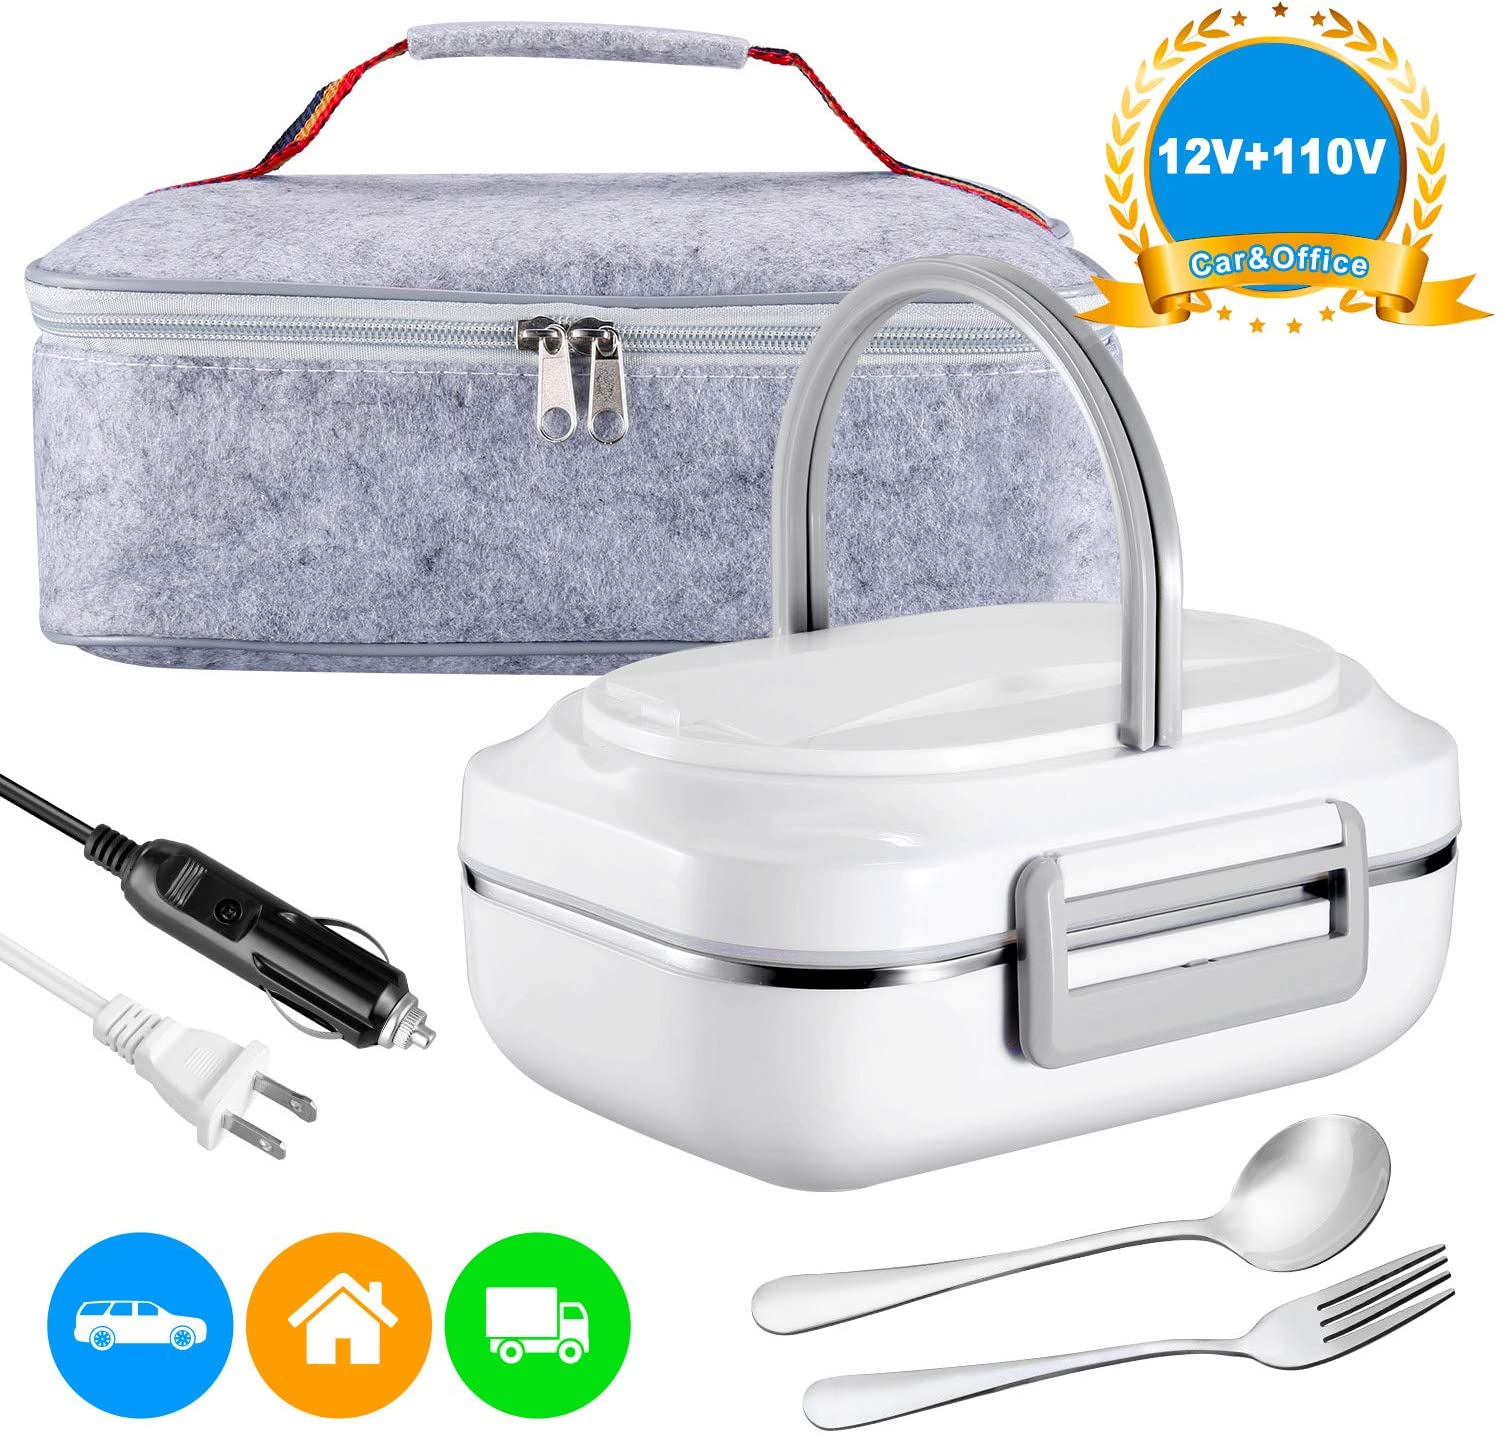 Electric Lunch Box Heating Lunchbox - Farochy Car Food Warmer and Heater Lunch Box Electric Lunch Box 2 in 1 for Car and Home 110V & 12V(Grey)